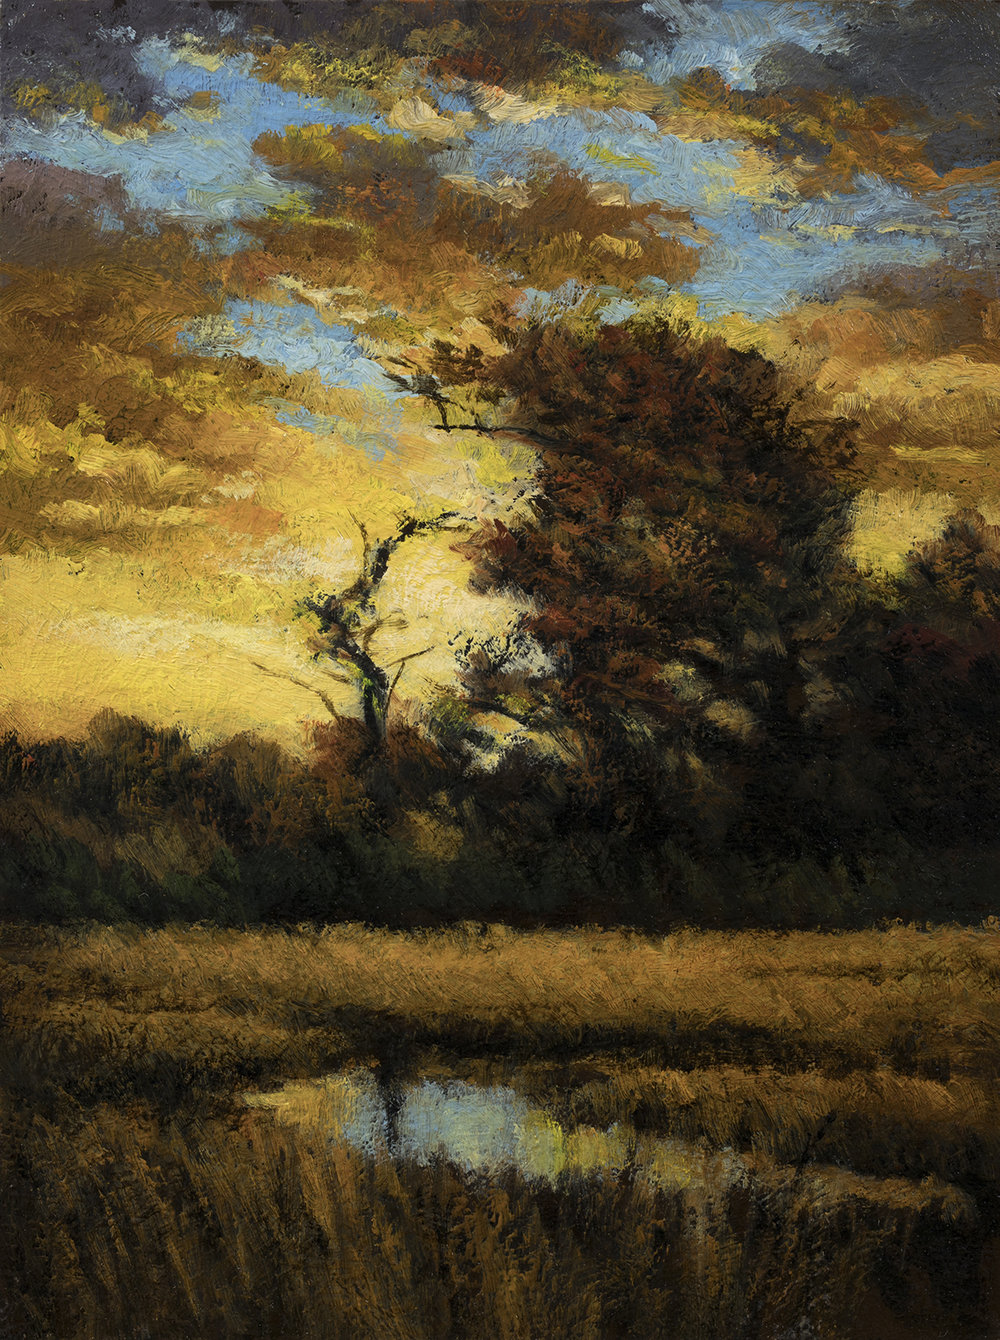 The Gloaming by M Francis McCarthy - 6x8 Oil on Wood Panel